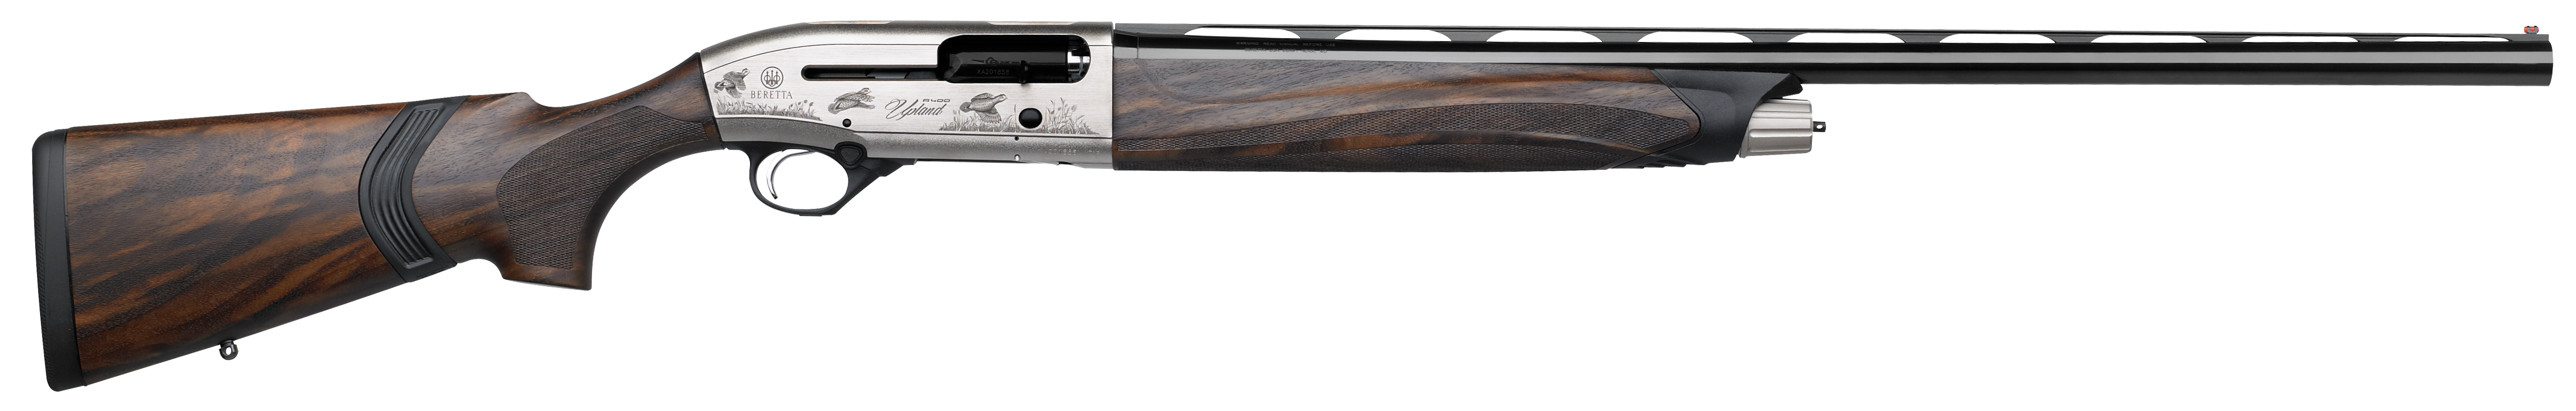 Beretta A400 Upland KO Semi-Auto  3'' 12 Gauge 26'' Nickeled Aluminum Alloy with Engraving - Walnut